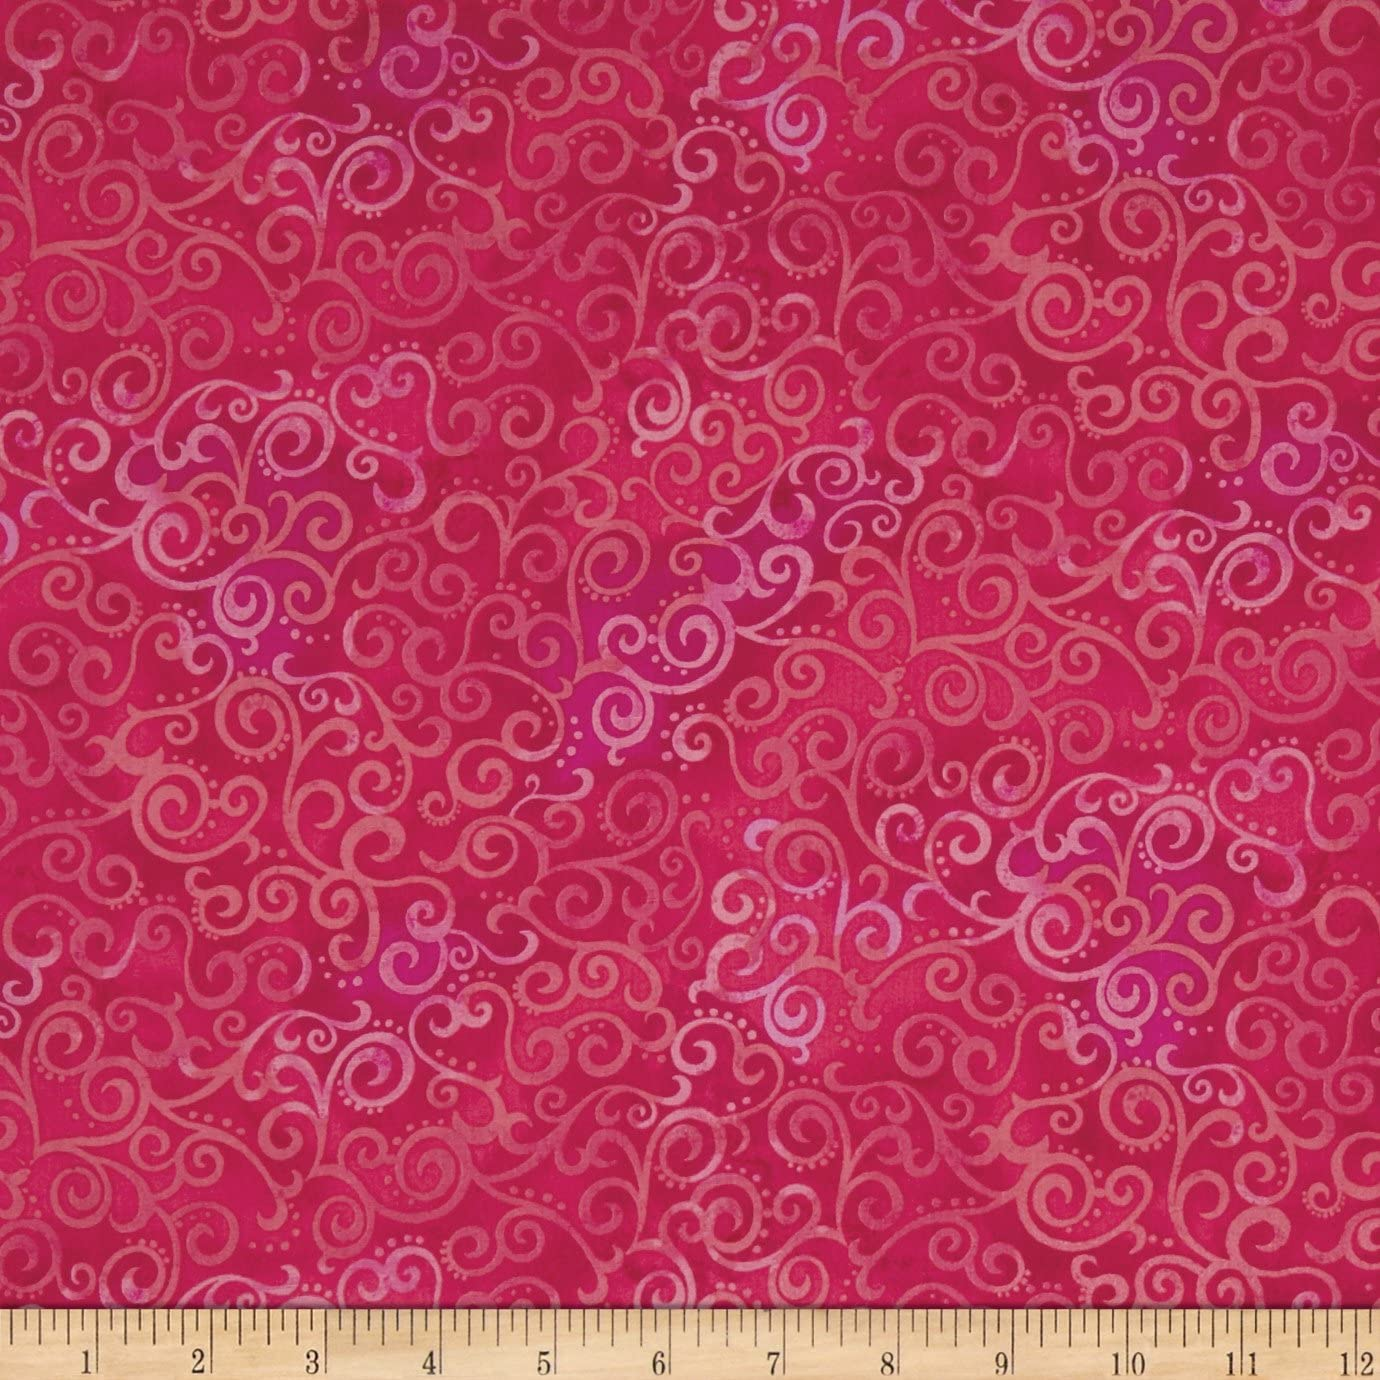 Quilting Treasures QT Quilt Fabrics Basics Ombre Scroll Blender Hot Pink Quilt Fabric by the Yard, Hot Pink